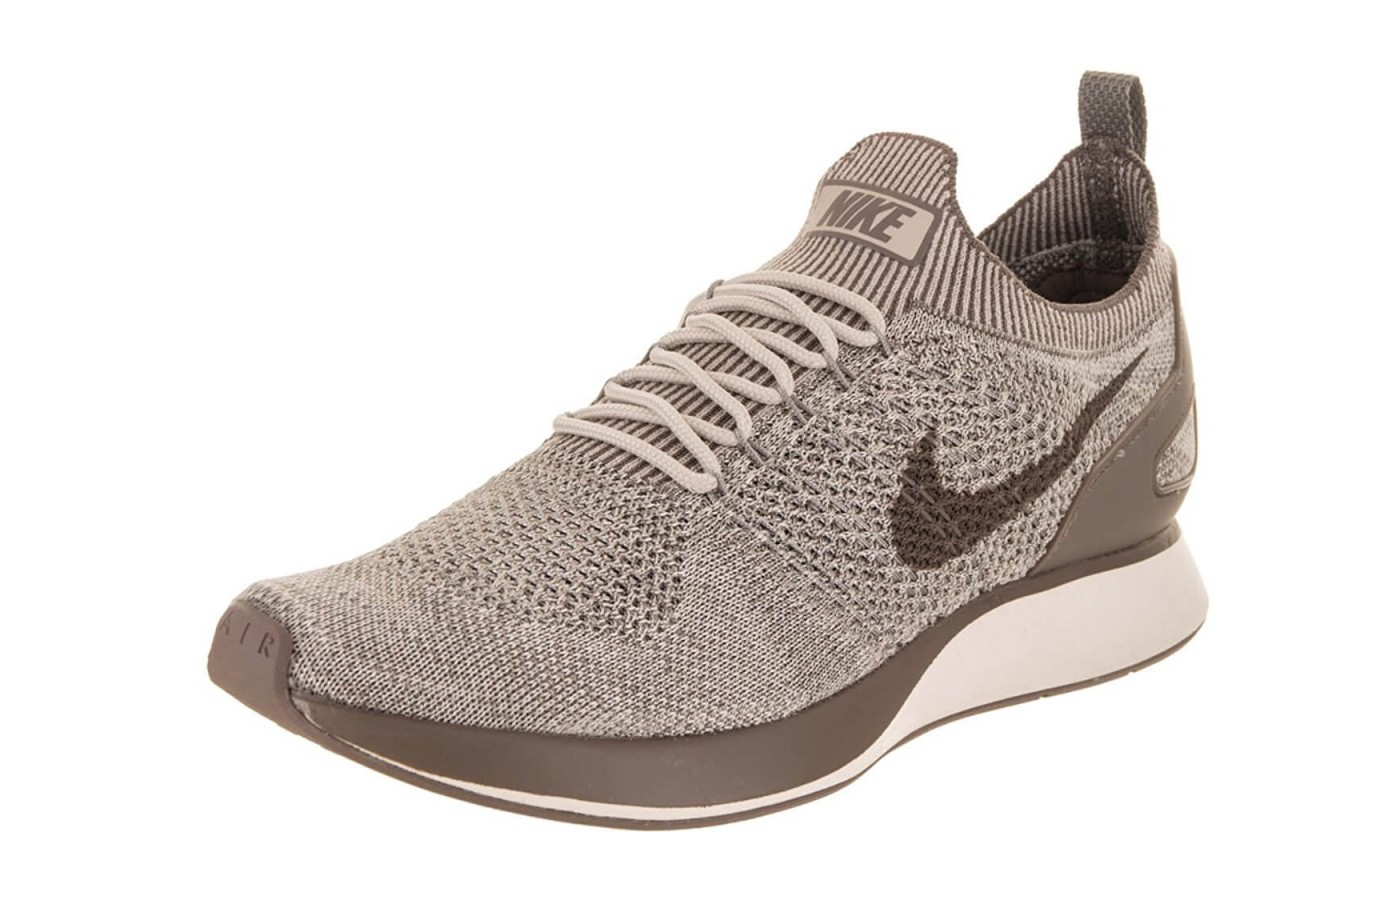 low priced 4eea0 31b3a The Nike Air Zoom Mariah Flyknit Racer features a breathable Flyknit upper  ...